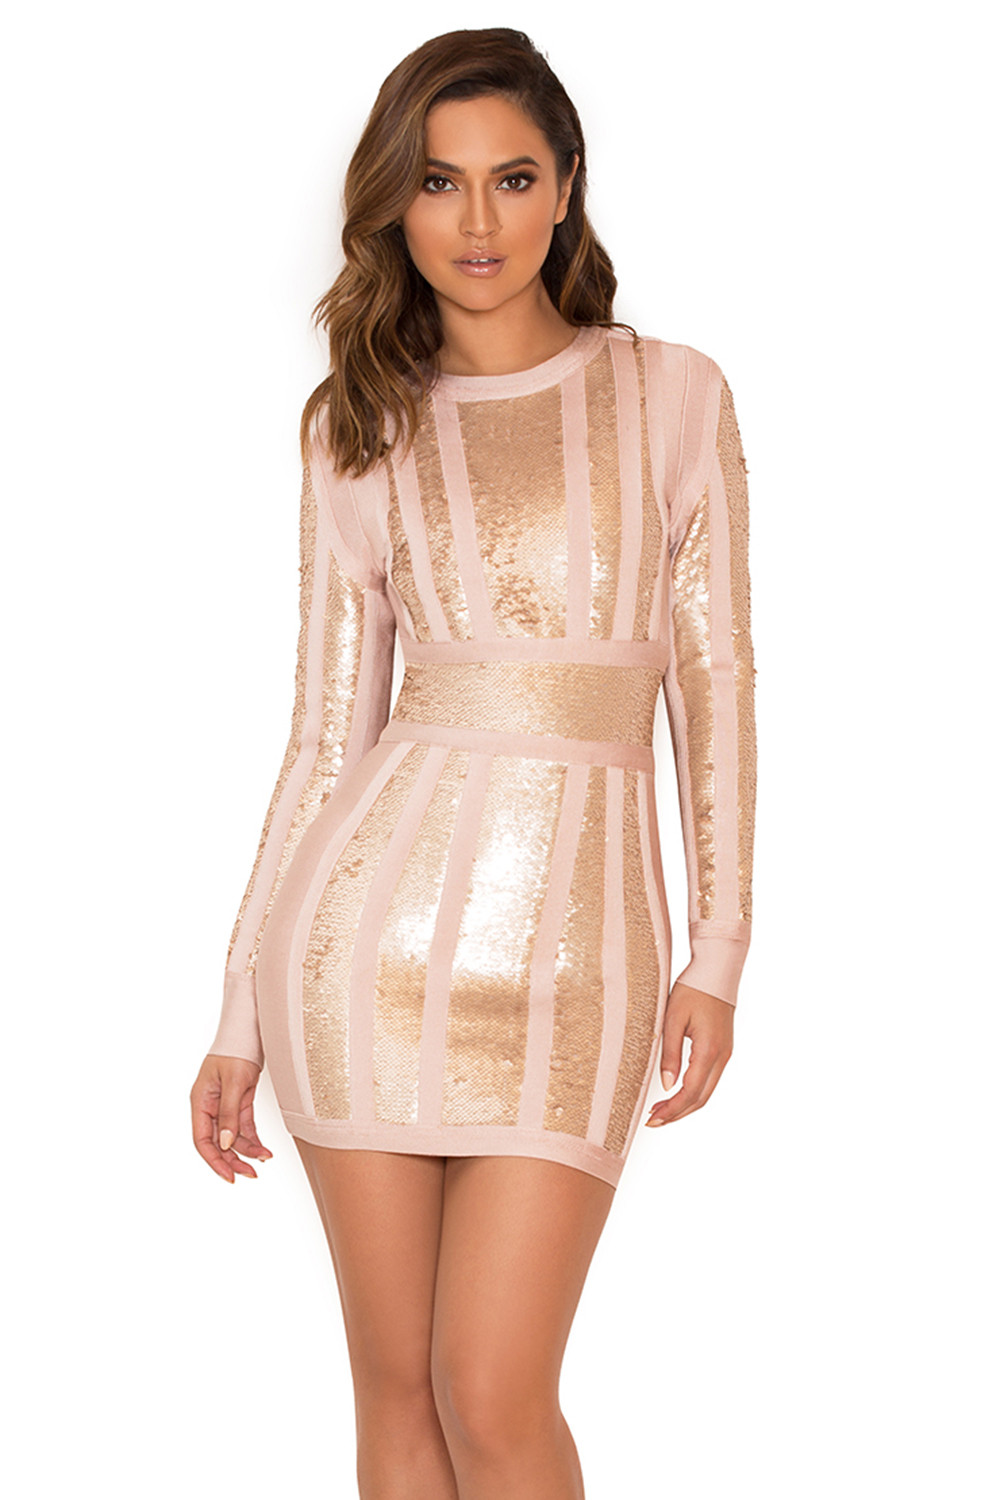 Clothing : Bandage Dresses : 'Massima' Pink & Gold Bandage ...